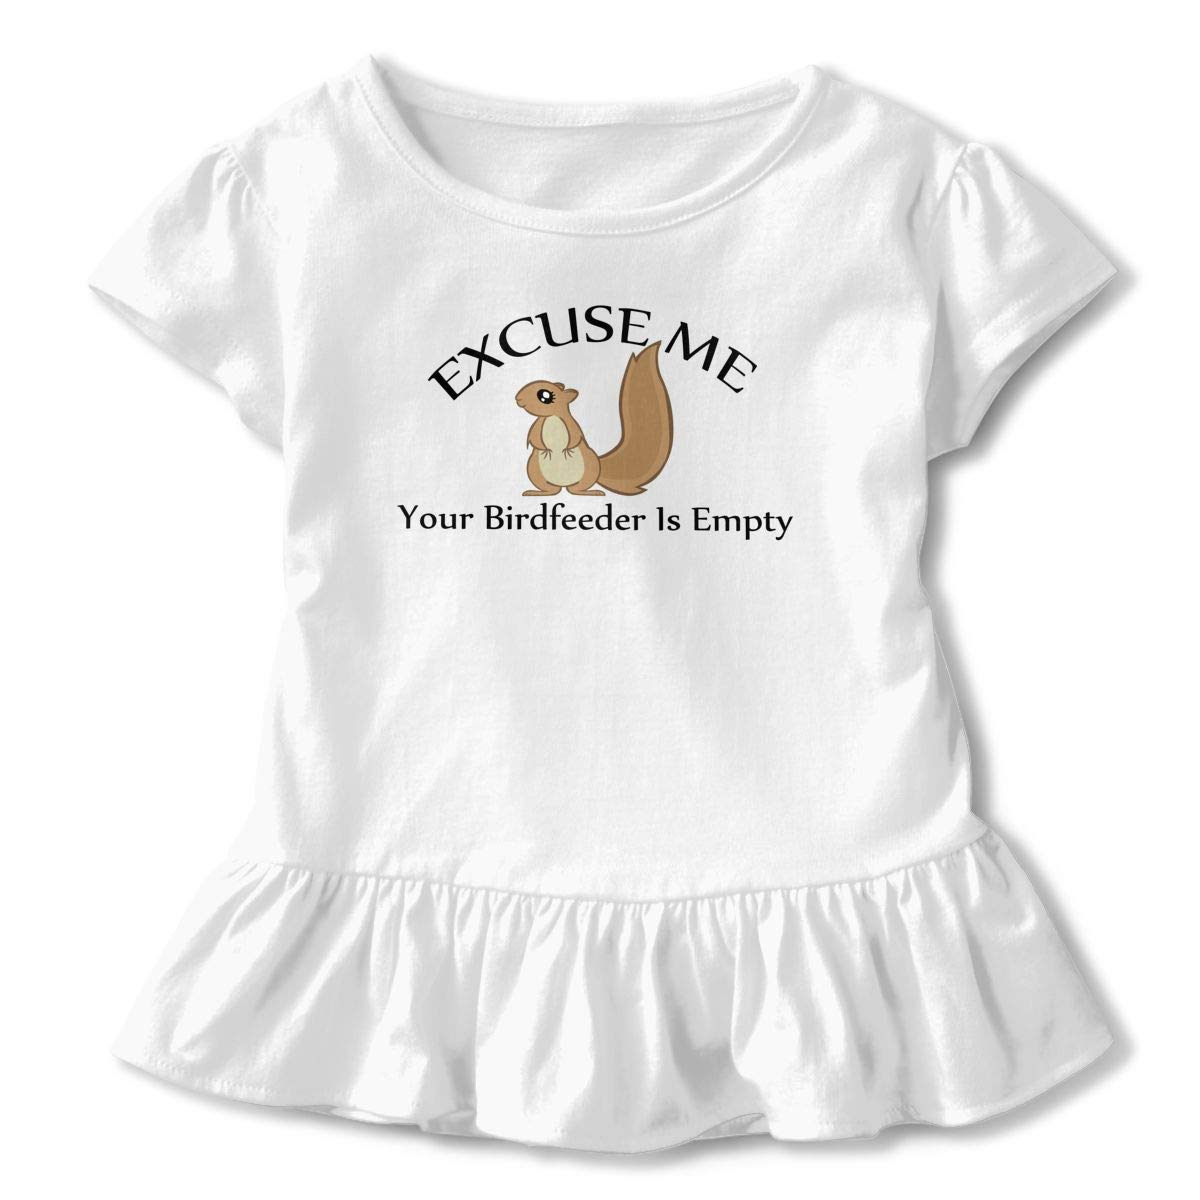 HYBDX9T Little Girls Excuse Me Your Birdfeeder is Empty Funny Short Sleeve Cotton T Shirts Basic Tops Tee Clothes